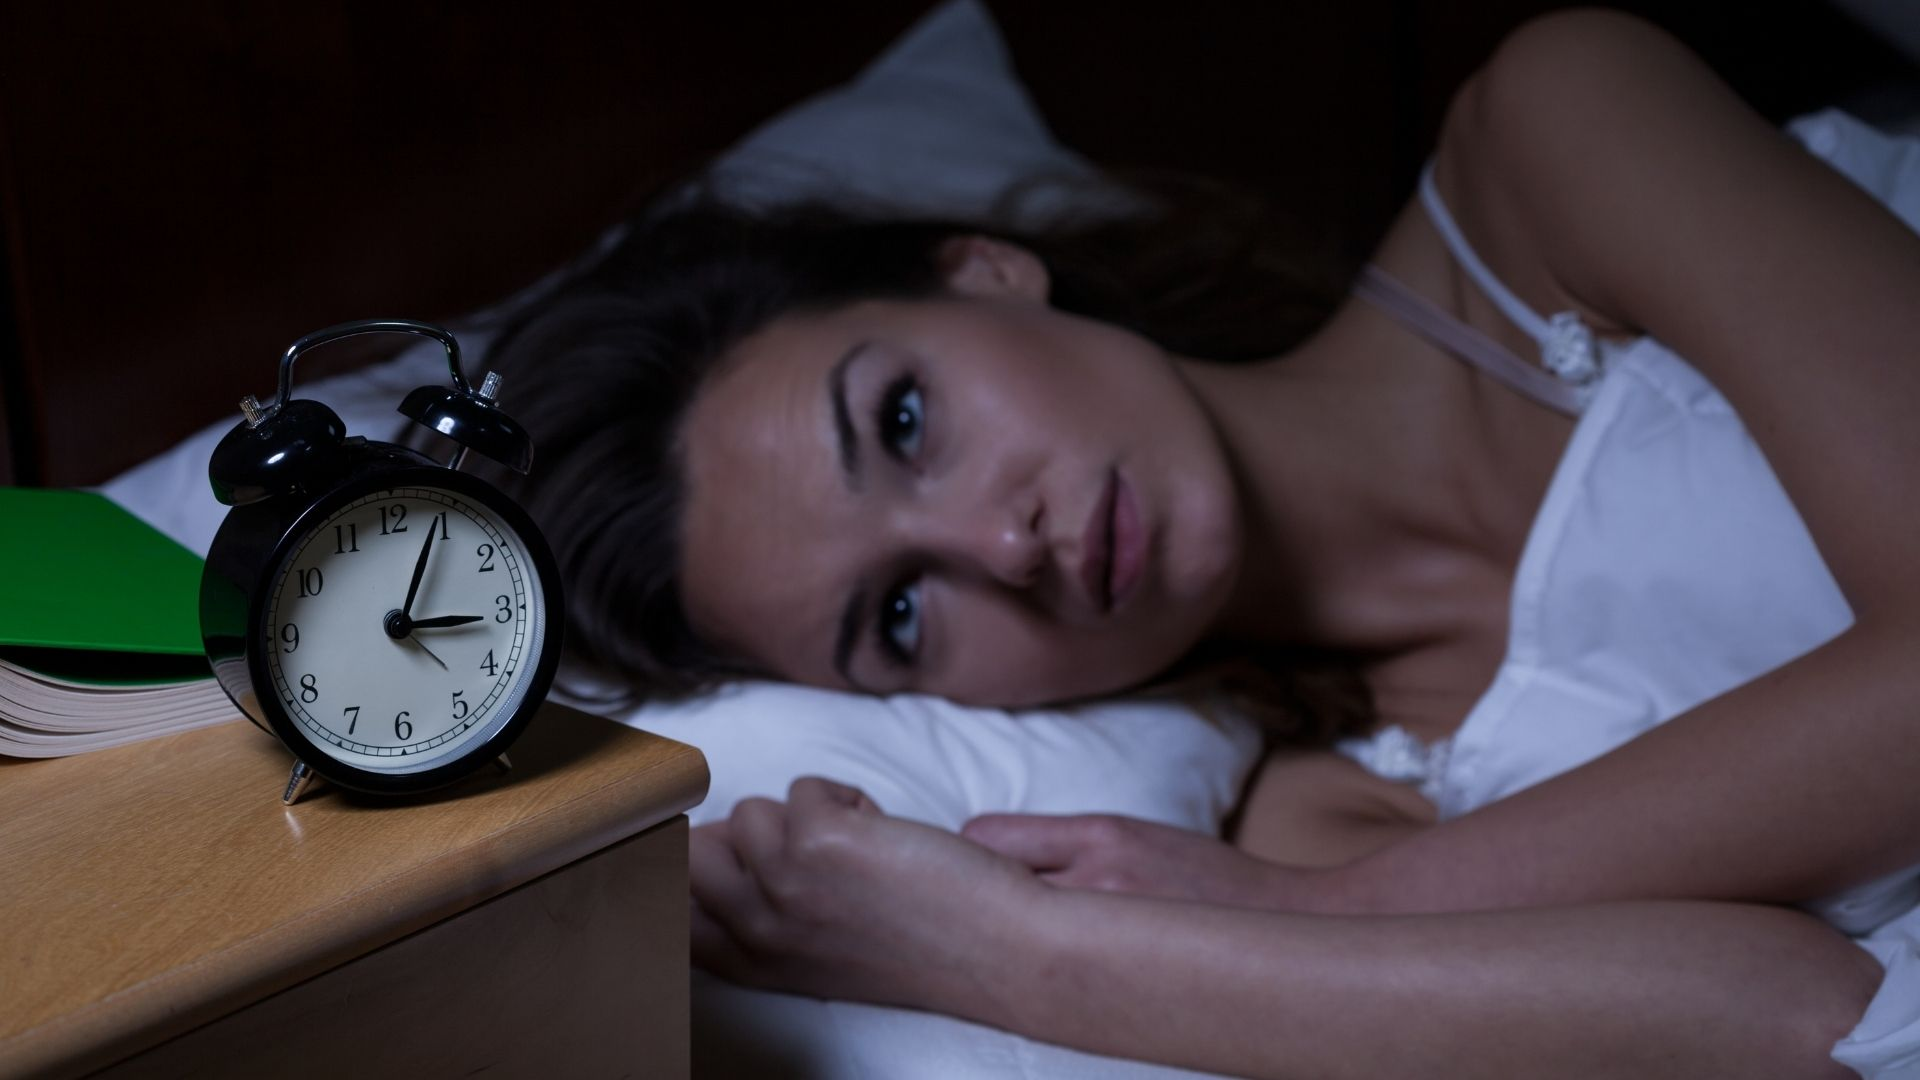 insomnia - When you just cannot fall asleep at night